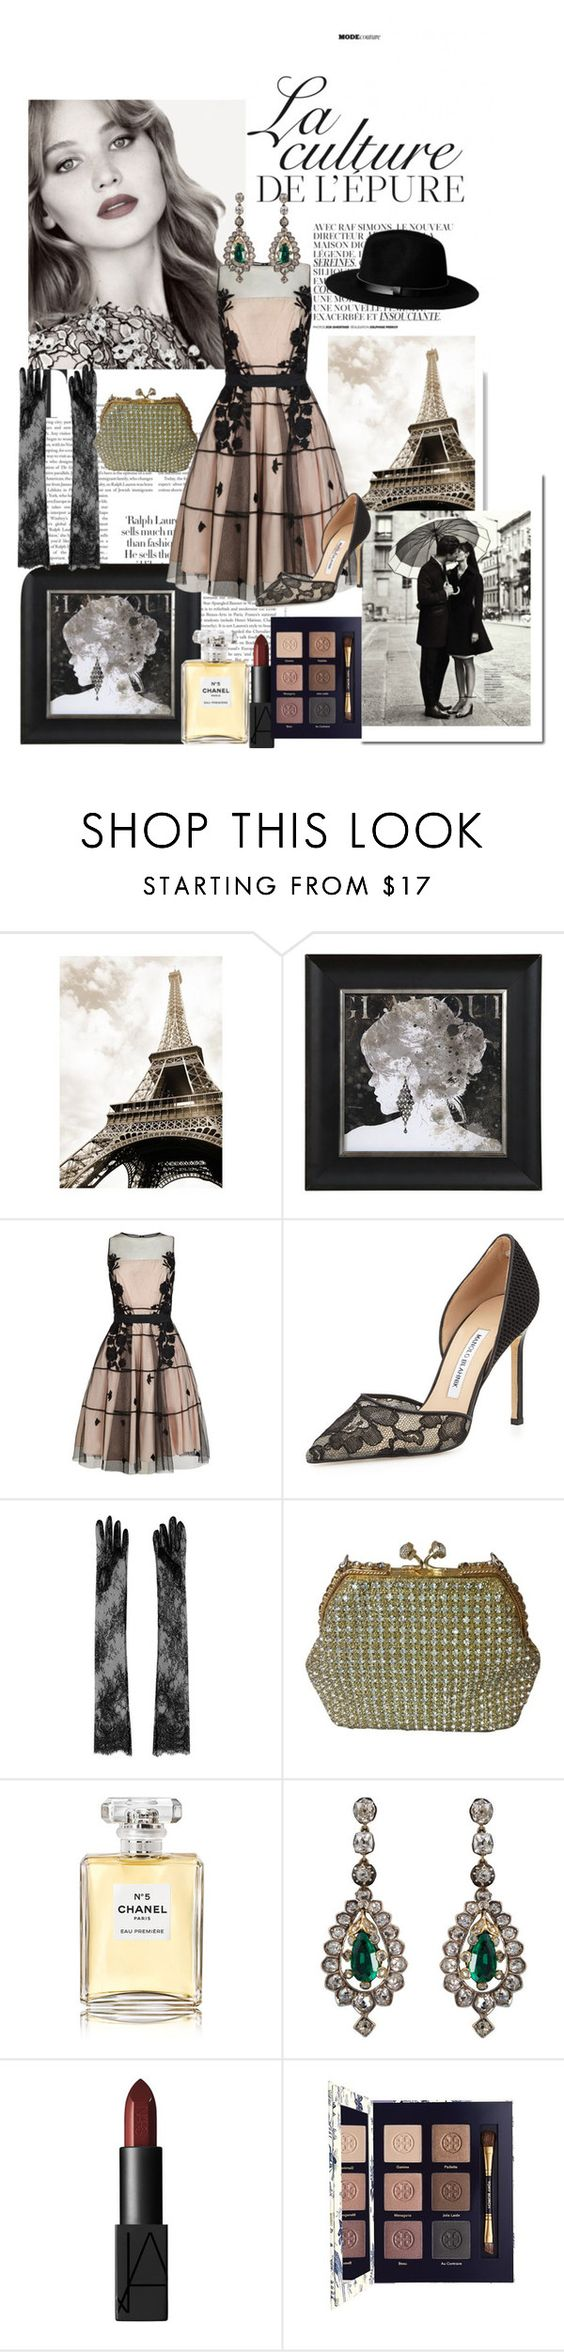 """How's Paris?"" by november-skyline ❤ liked on Polyvore featuring By Zoé, La Femme, Coast, Manolo Blahnik, N°21, Vintage, Chanel, H&M, NARS Cosmetics and Tory Burch"